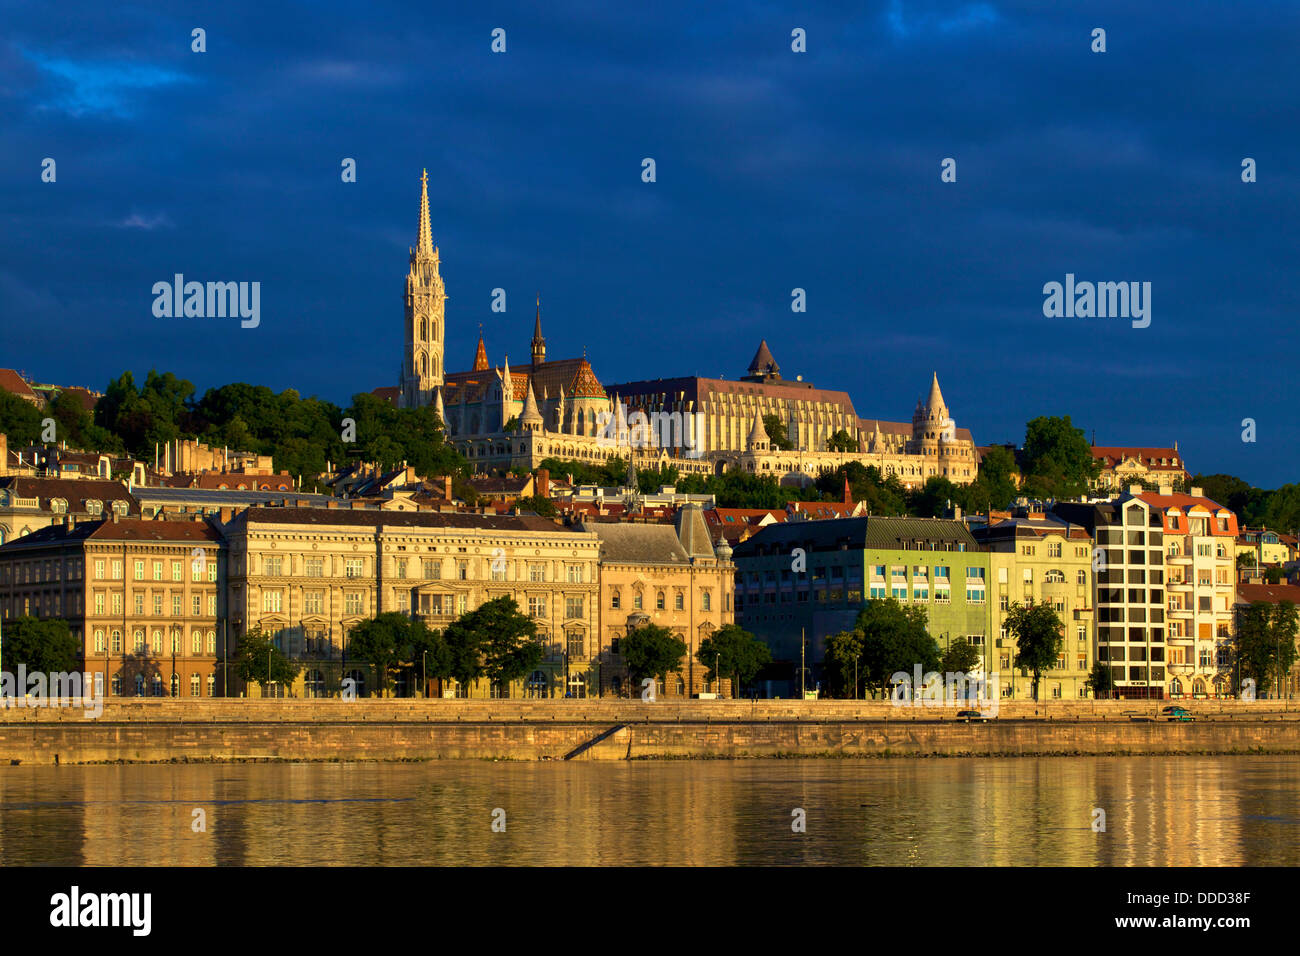 Matyas Church and Fisherman's Bastion, Budapest, Hungary, Europe - Stock Image